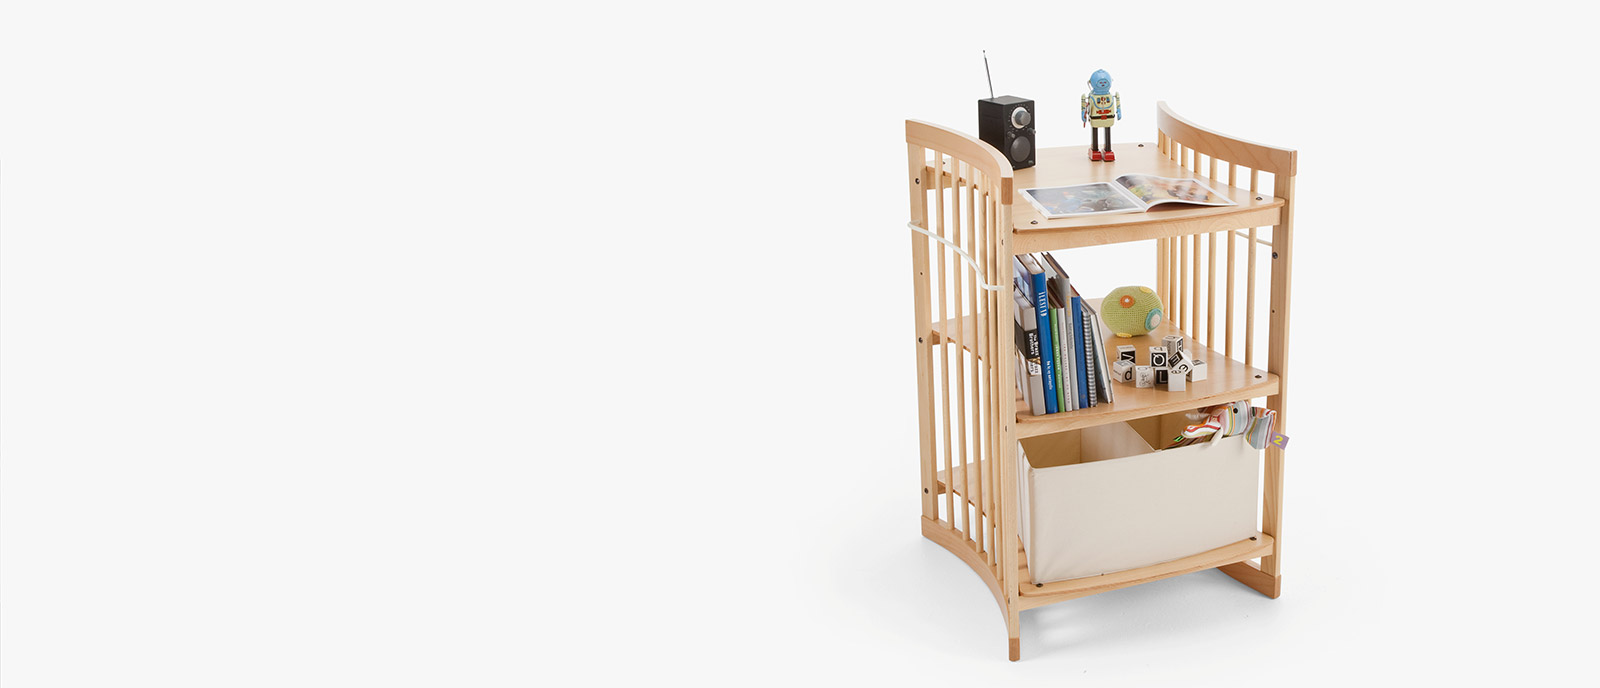 Stokke Care Changing Table For Your Baby 180 S Nursery